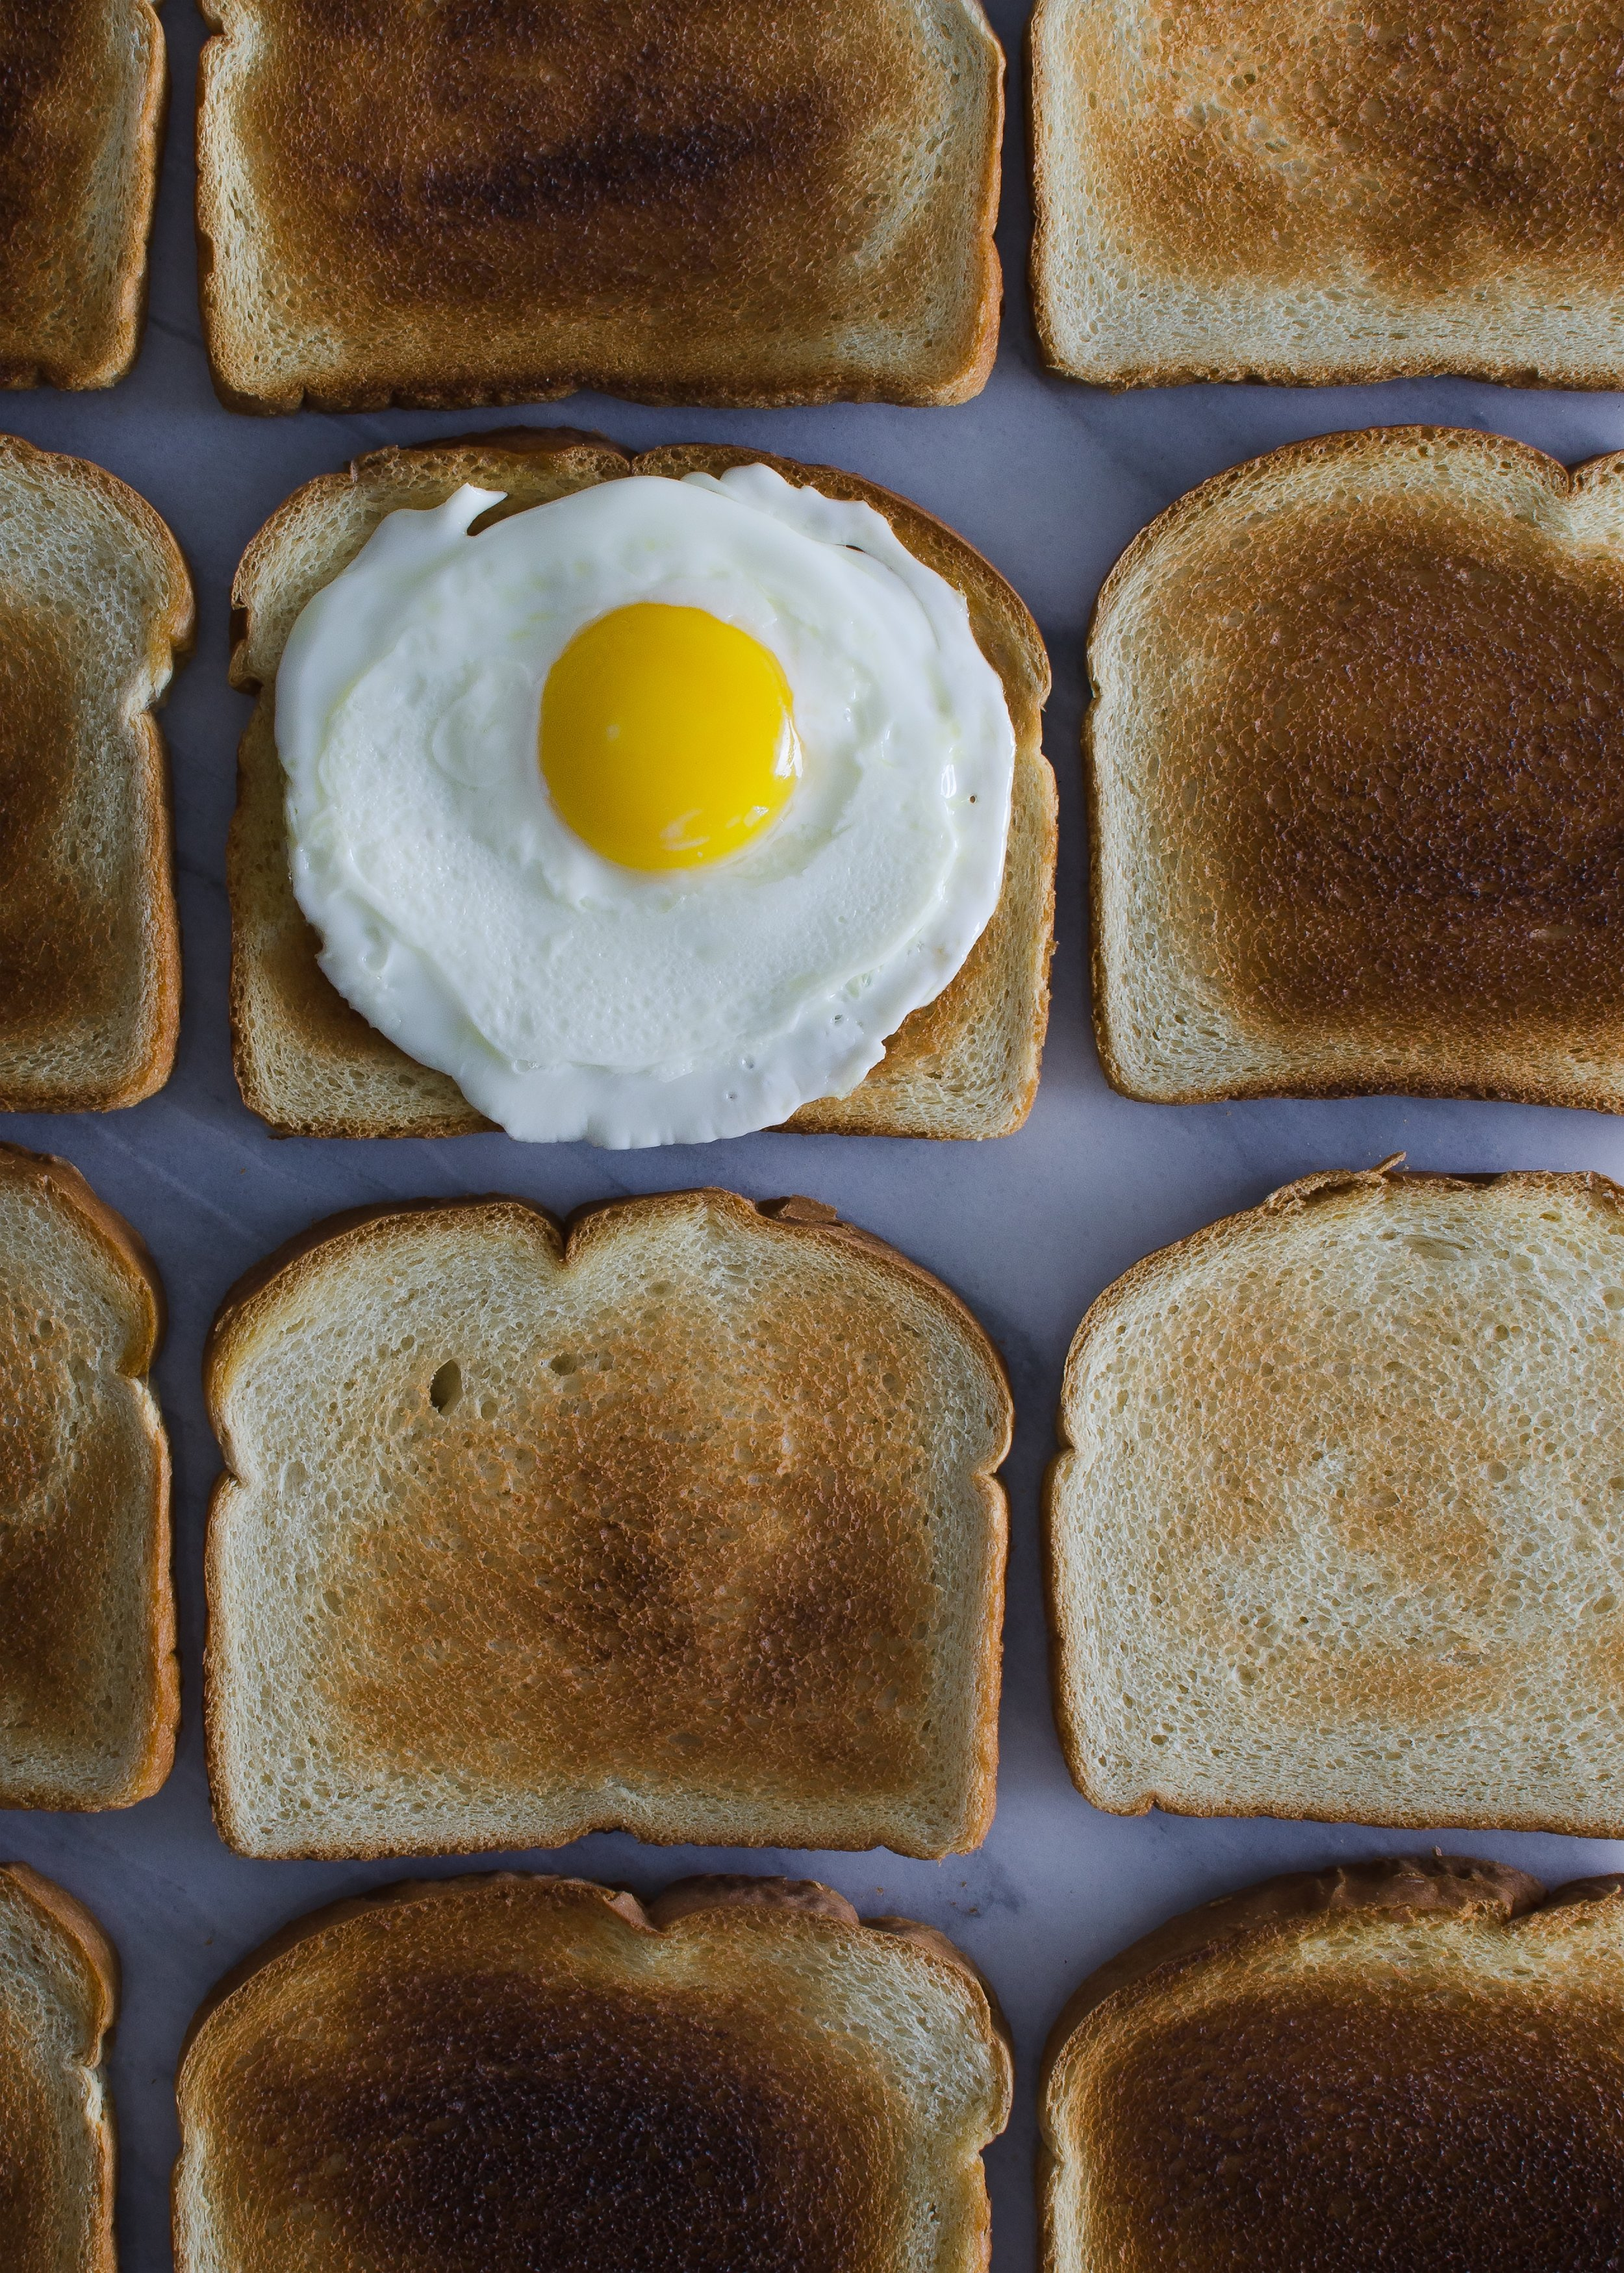 Lutein and eggs, a good health story